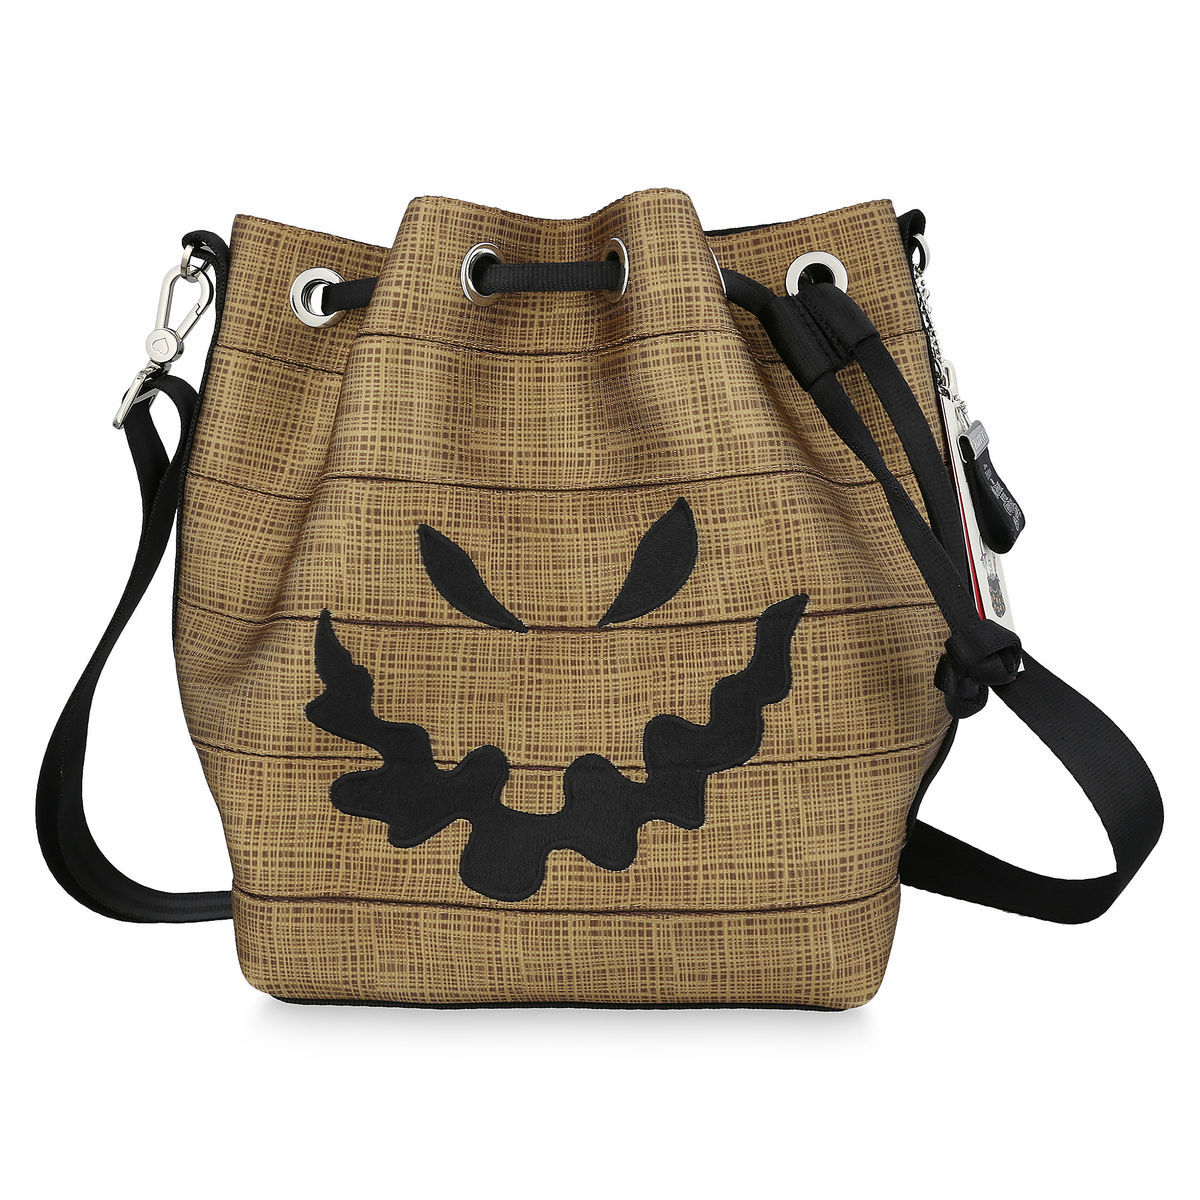 Product Image of Oogie Boogie Backpack by Harveys - The Nightmare Before  Christmas   1 5ed0a767ad